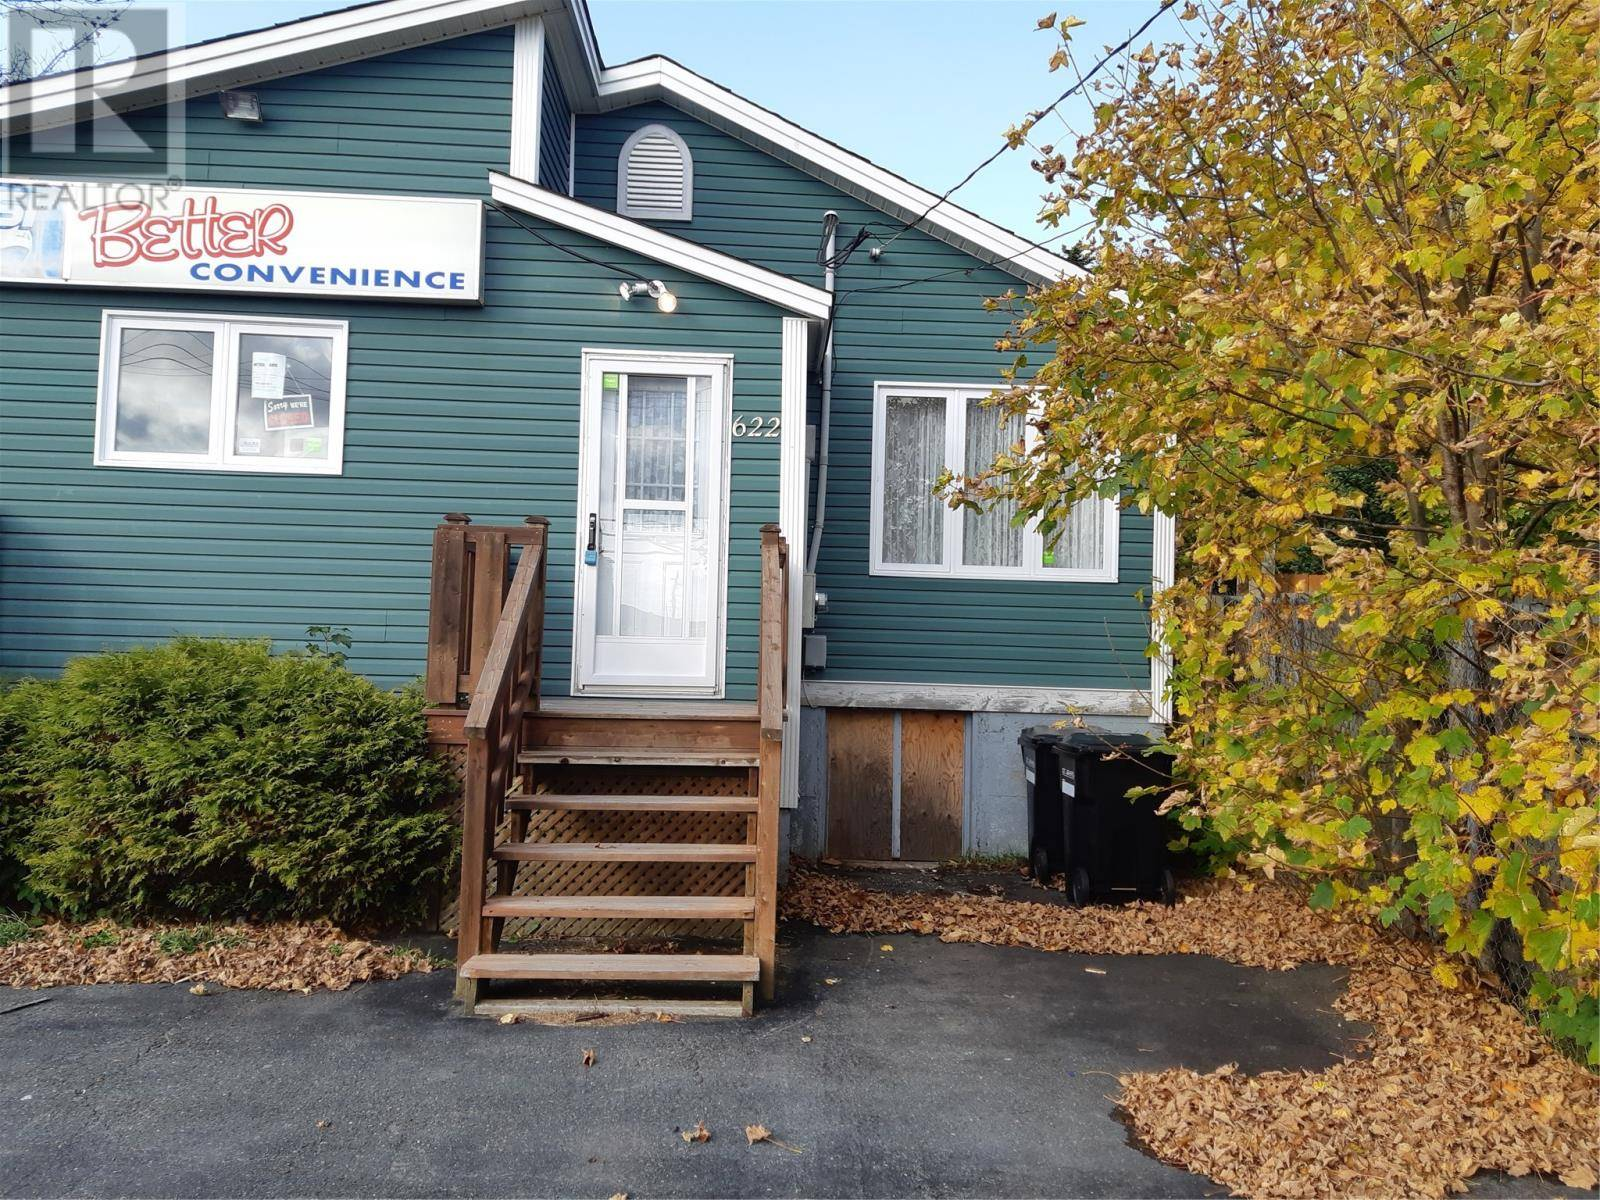 House for sale at 622 Empire Ave St. John's Newfoundland - MLS: 1205648